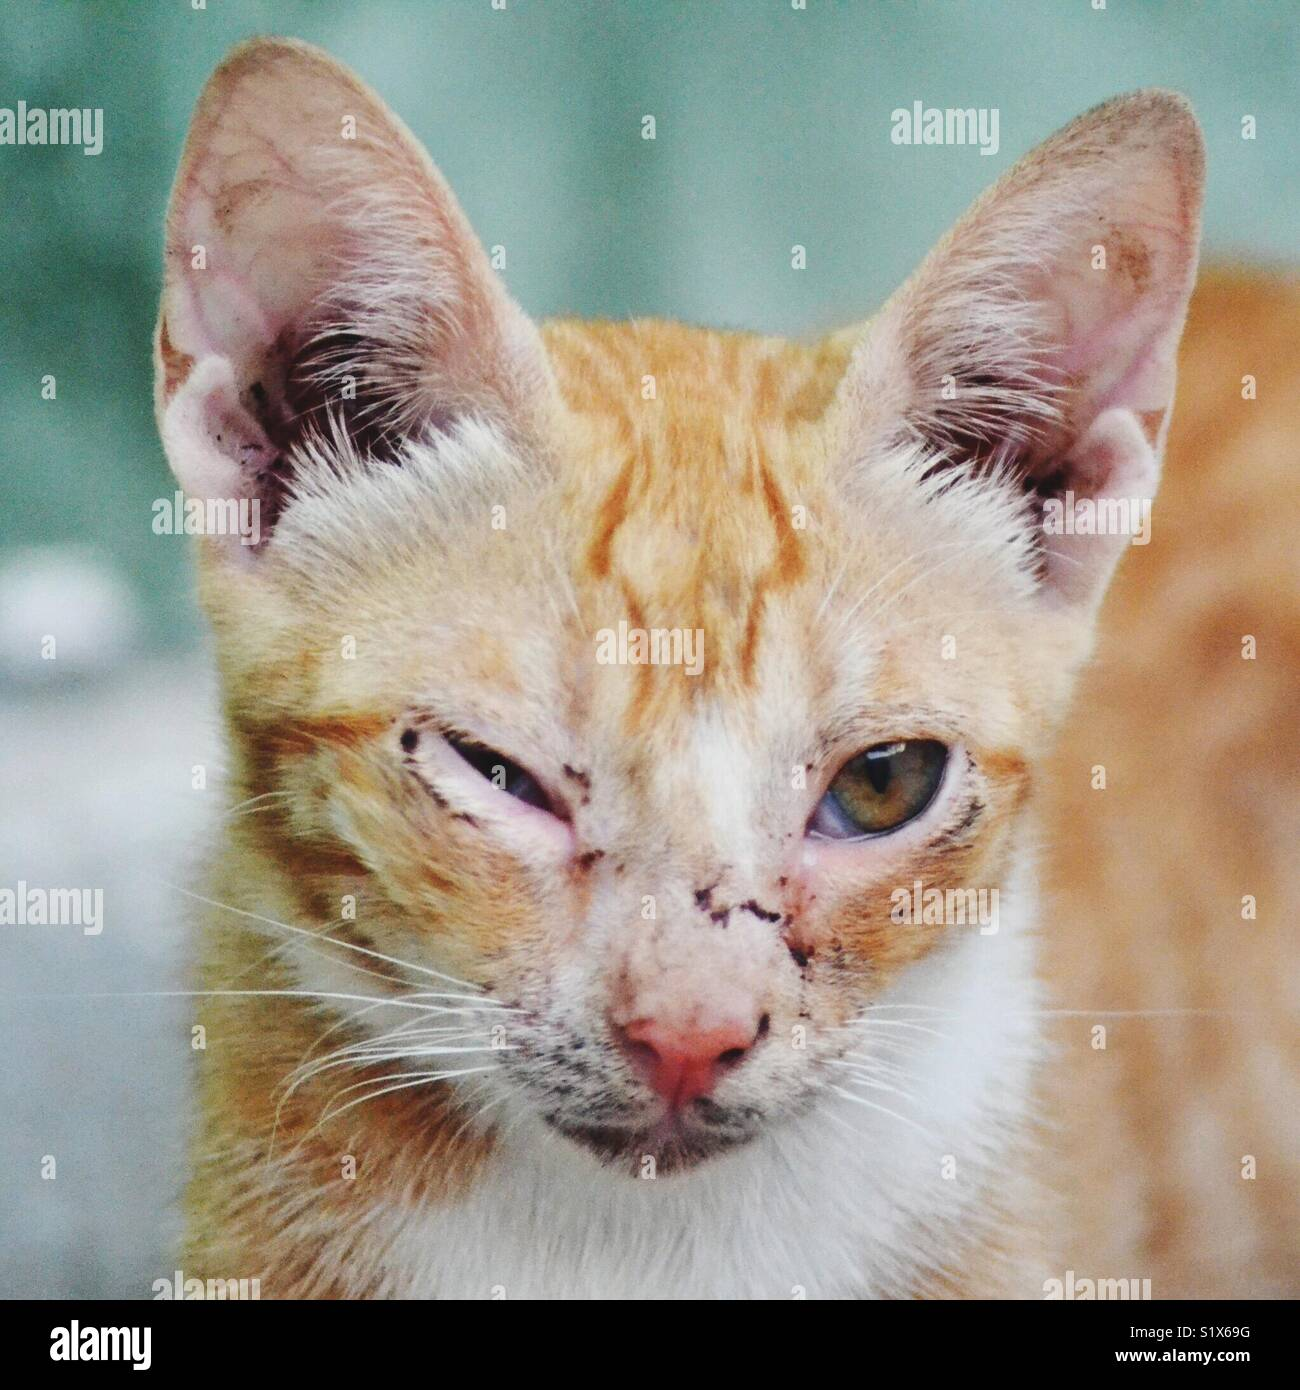 Winking Cat - Stock Image